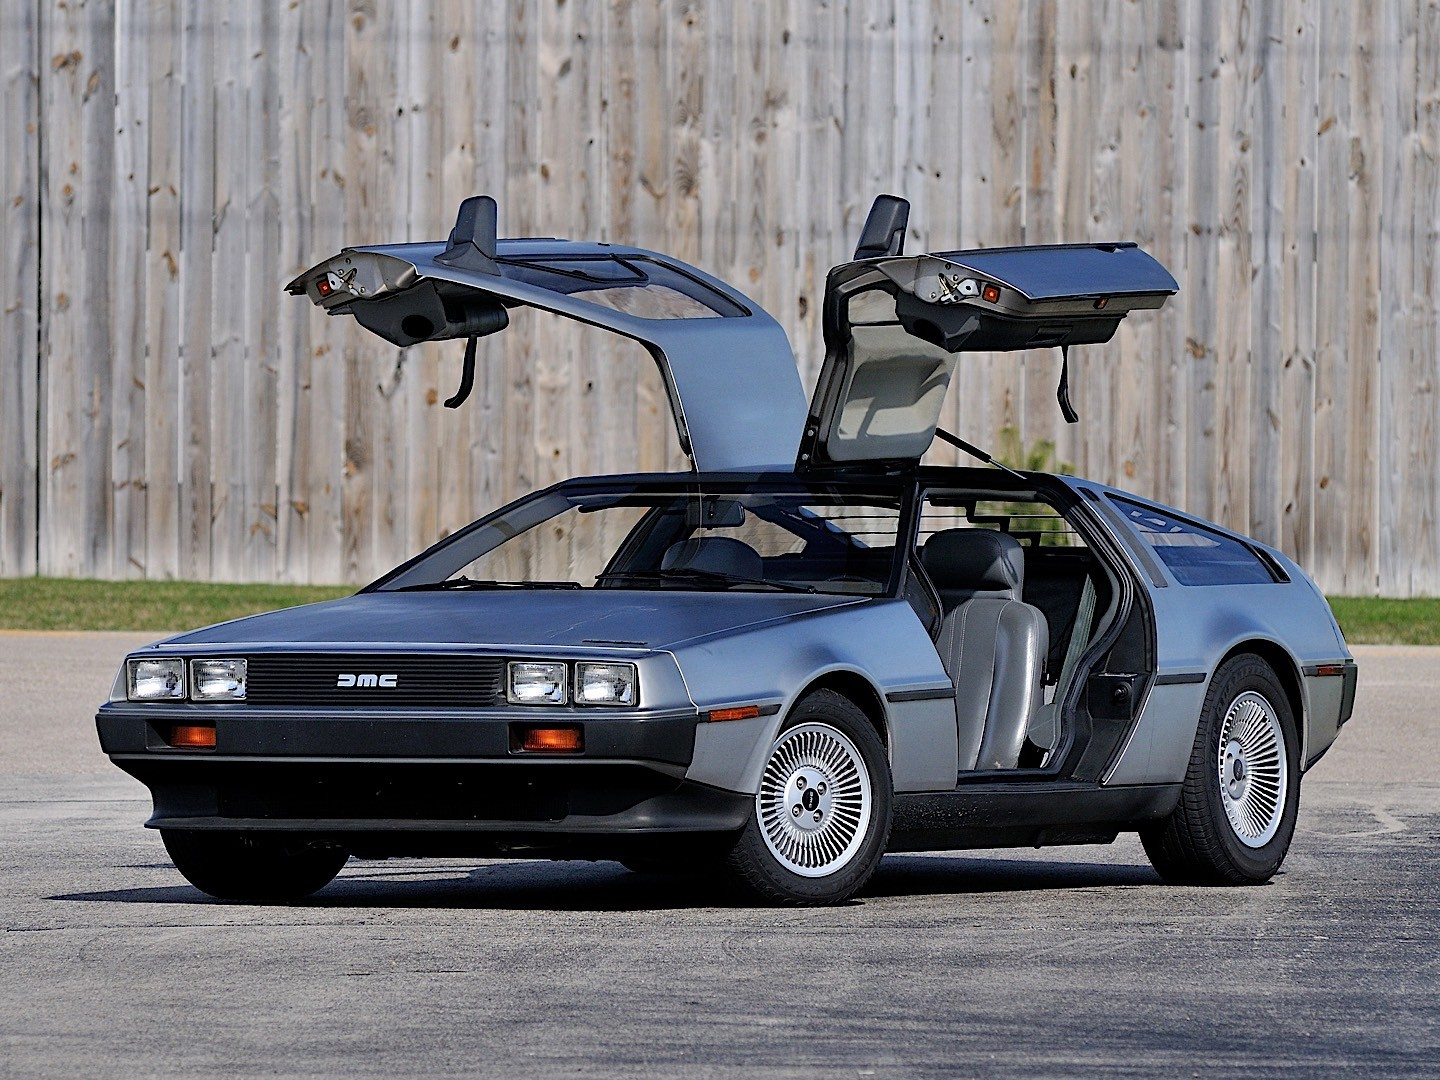 Fast And Furious 5 Cars Hd Wallpapers Delorean Dmc 12 Specs Amp Photos 1981 1982 1983